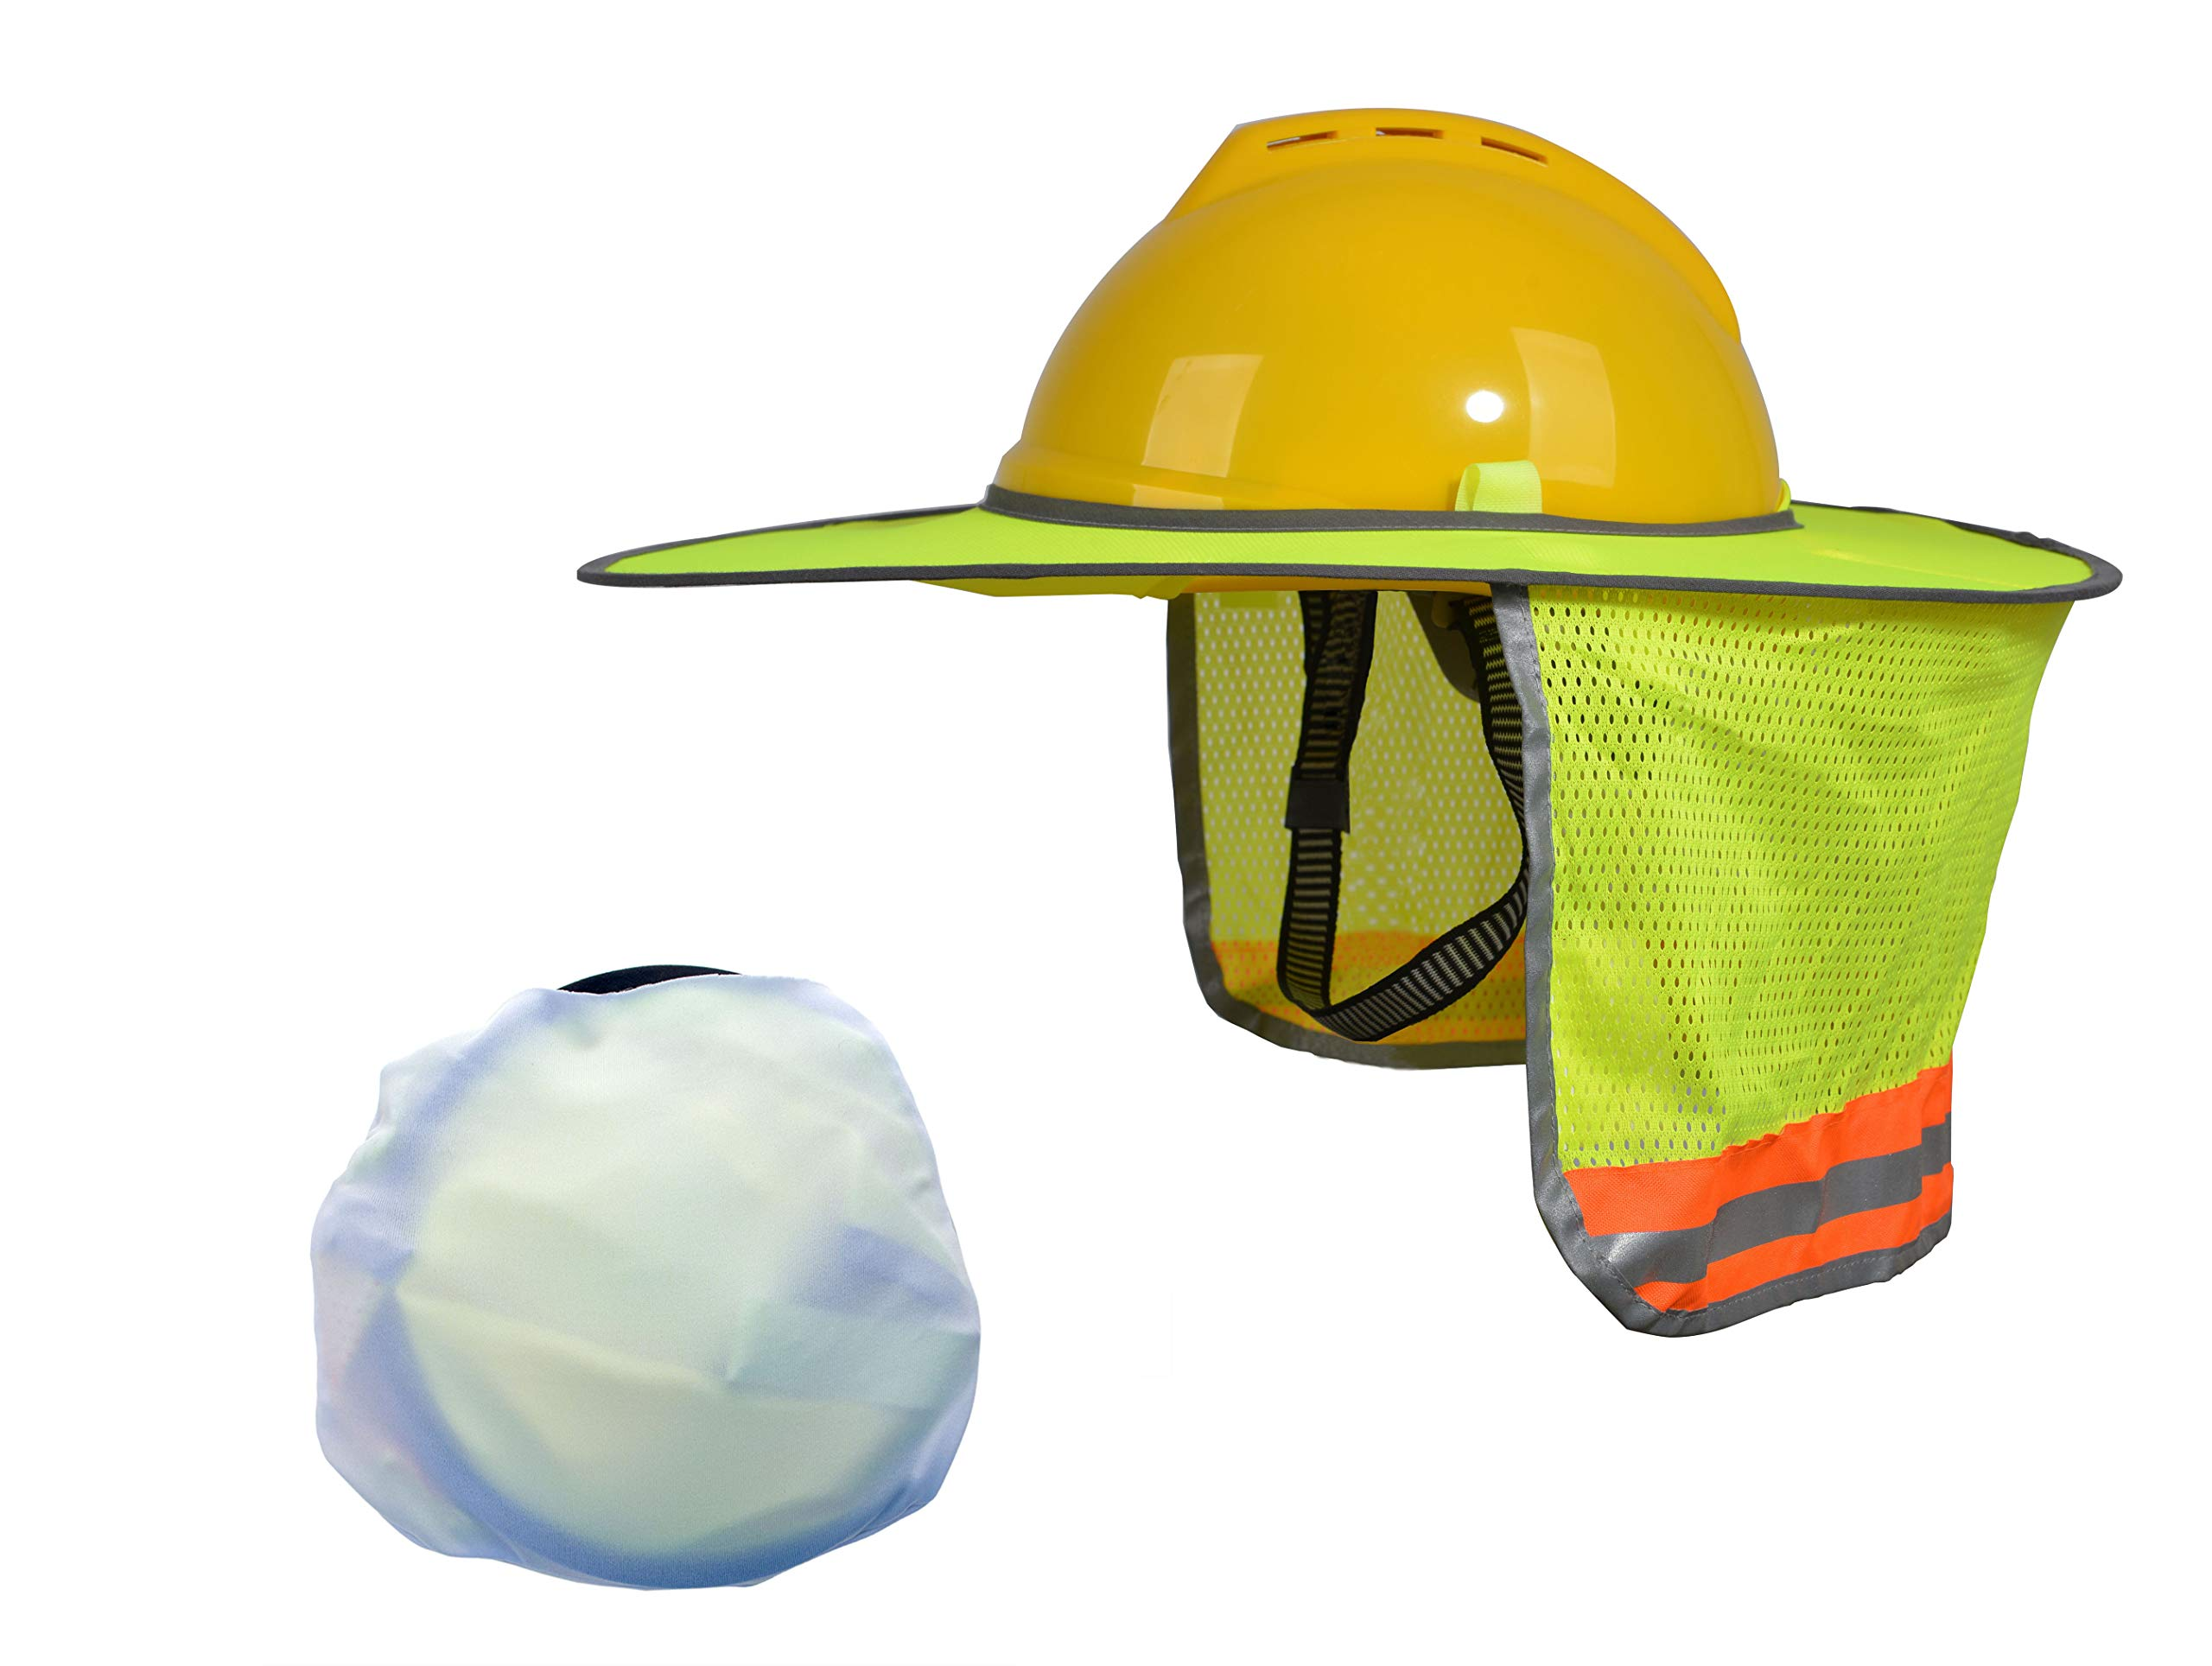 10 Pack Hard Hat Sun Shield, Full Brim Mesh Neck Sun-Shade Protection with Visor for Hardhats, High Visibility and Reflective